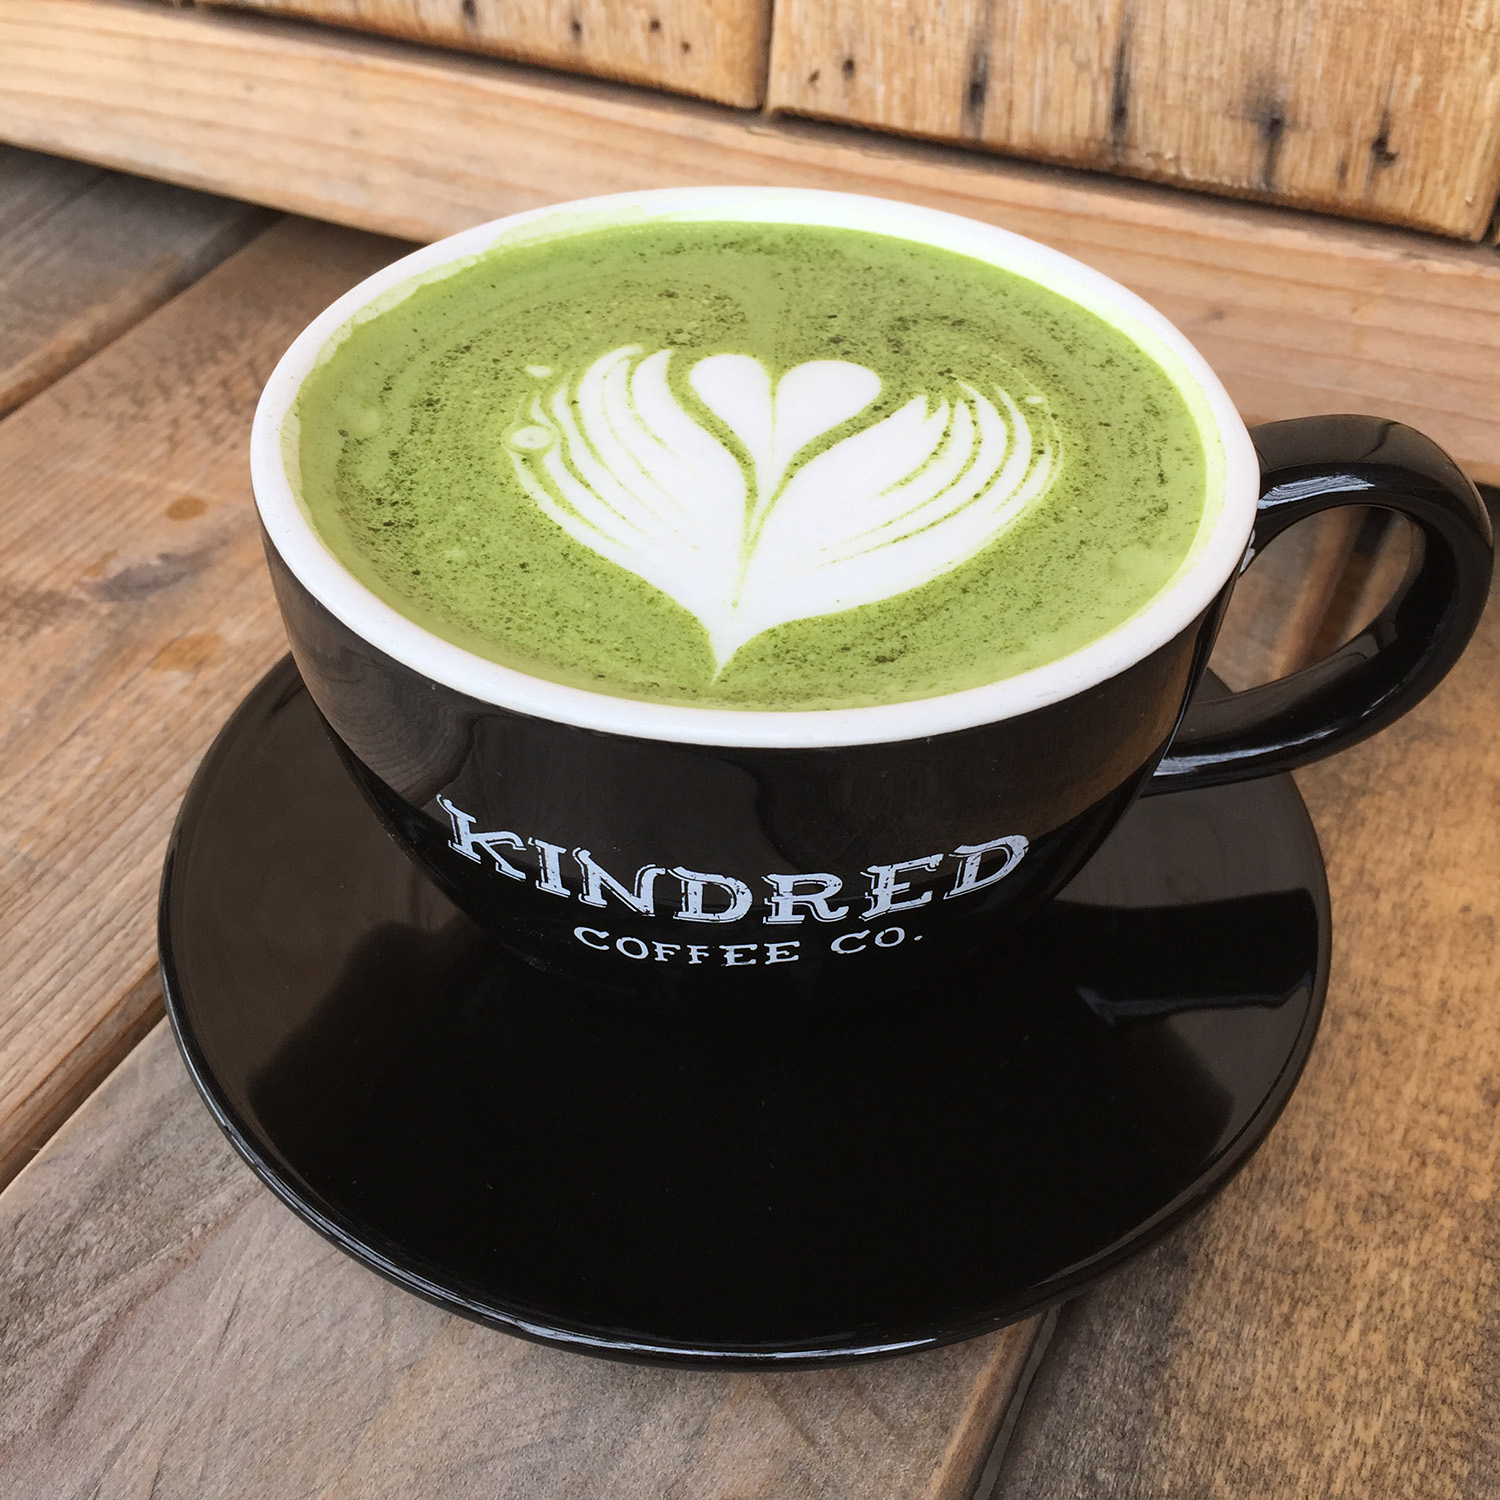 Matcha Tea Latte Image